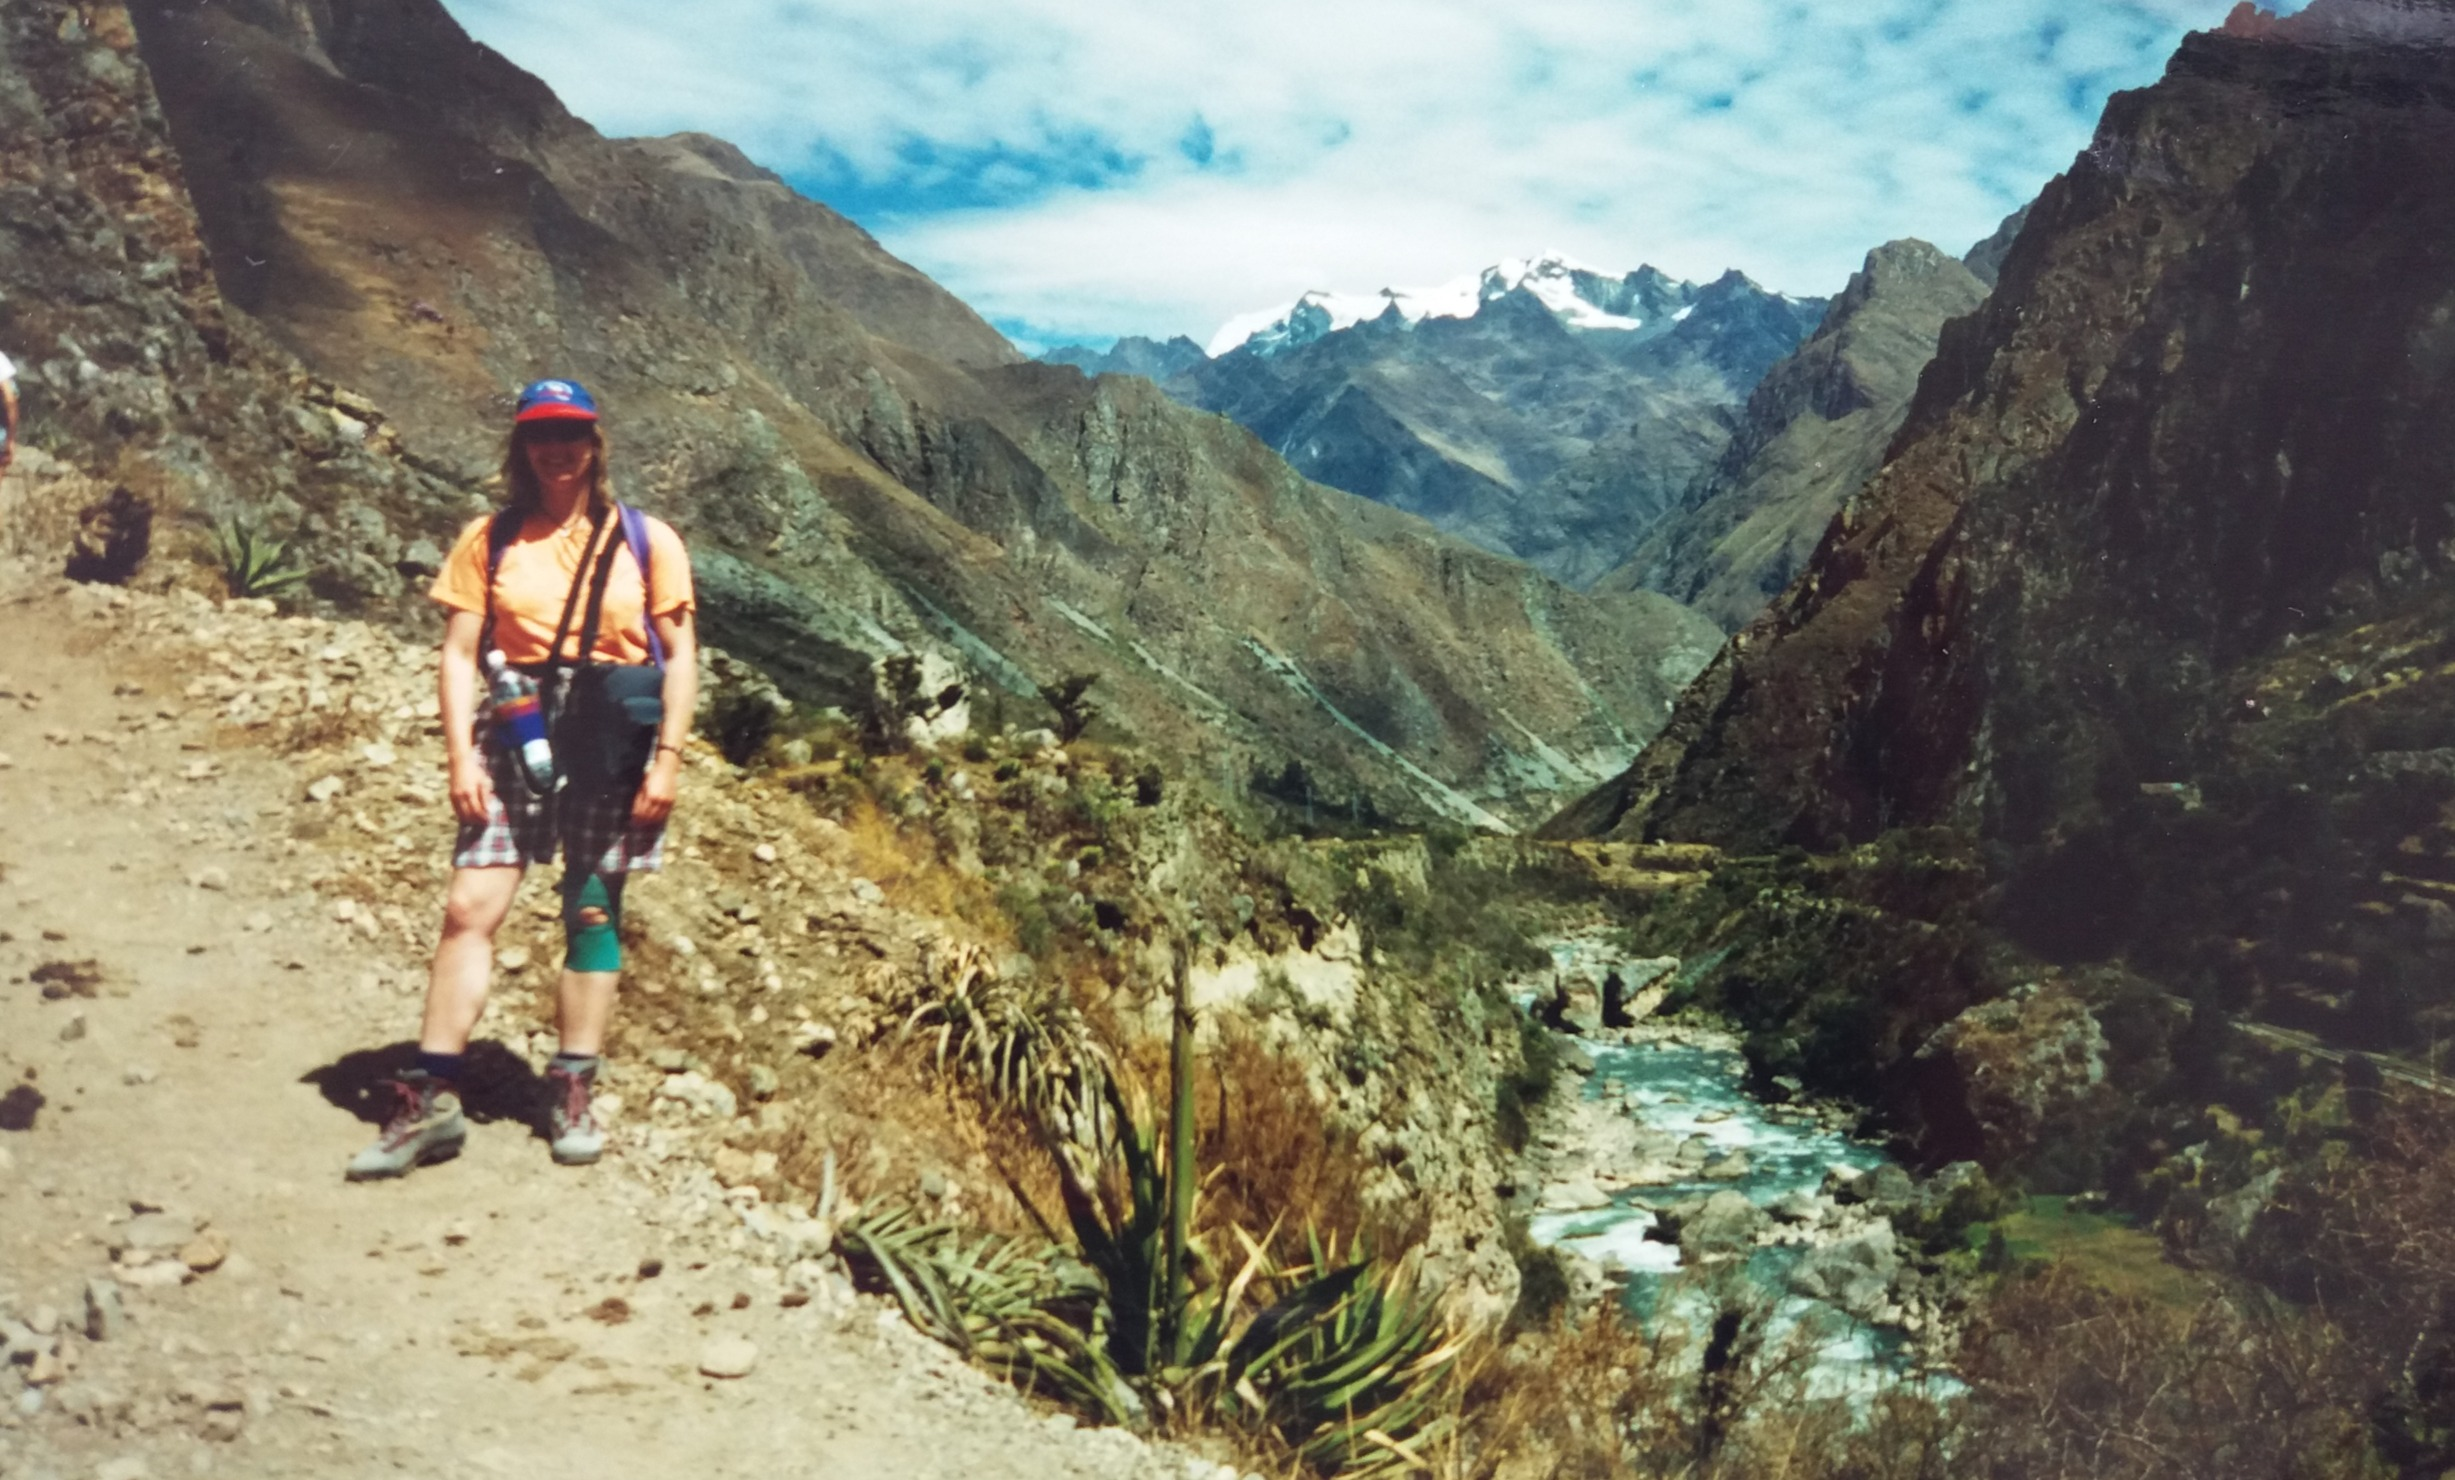 Peru diary - Day 15 - Inca Trail